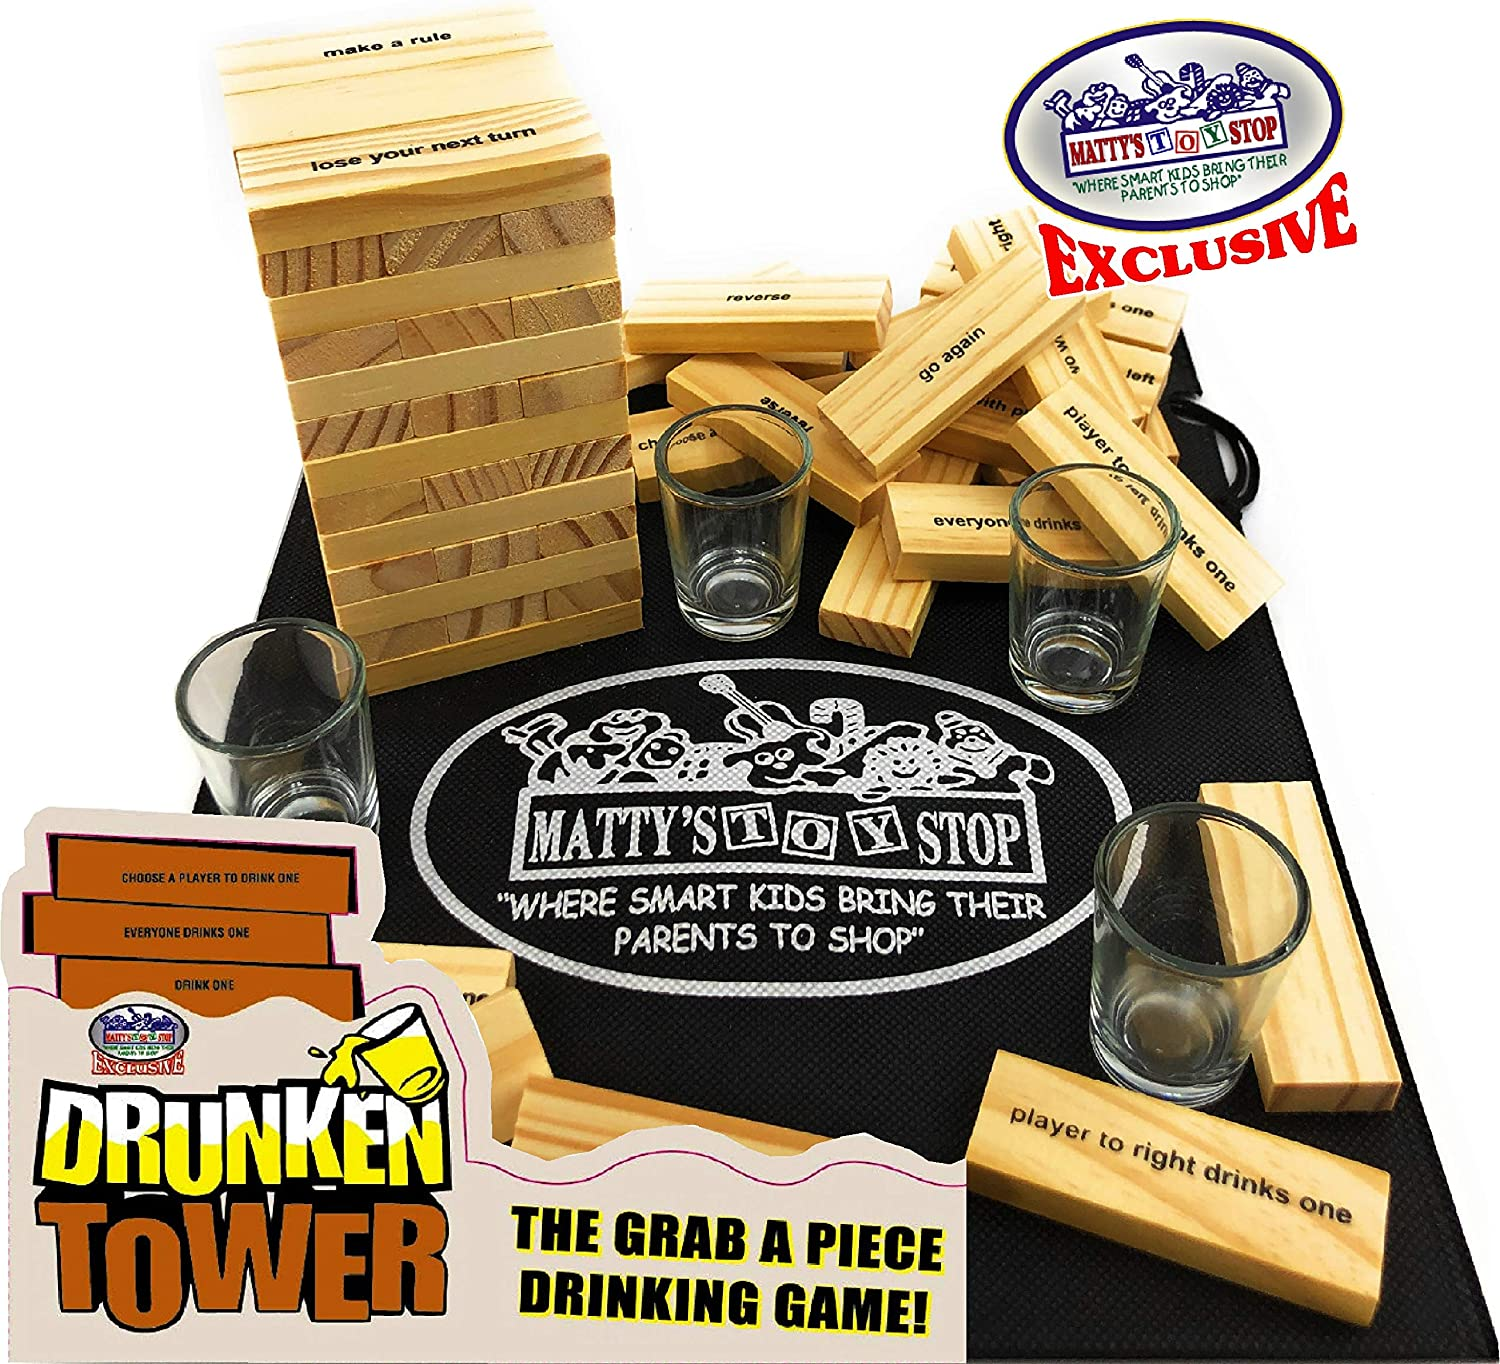 Homeware Deluxe Drunken Tower The Grab A Piece Drinking Game with Exclusive Matty's Toy Stop Storage Bag